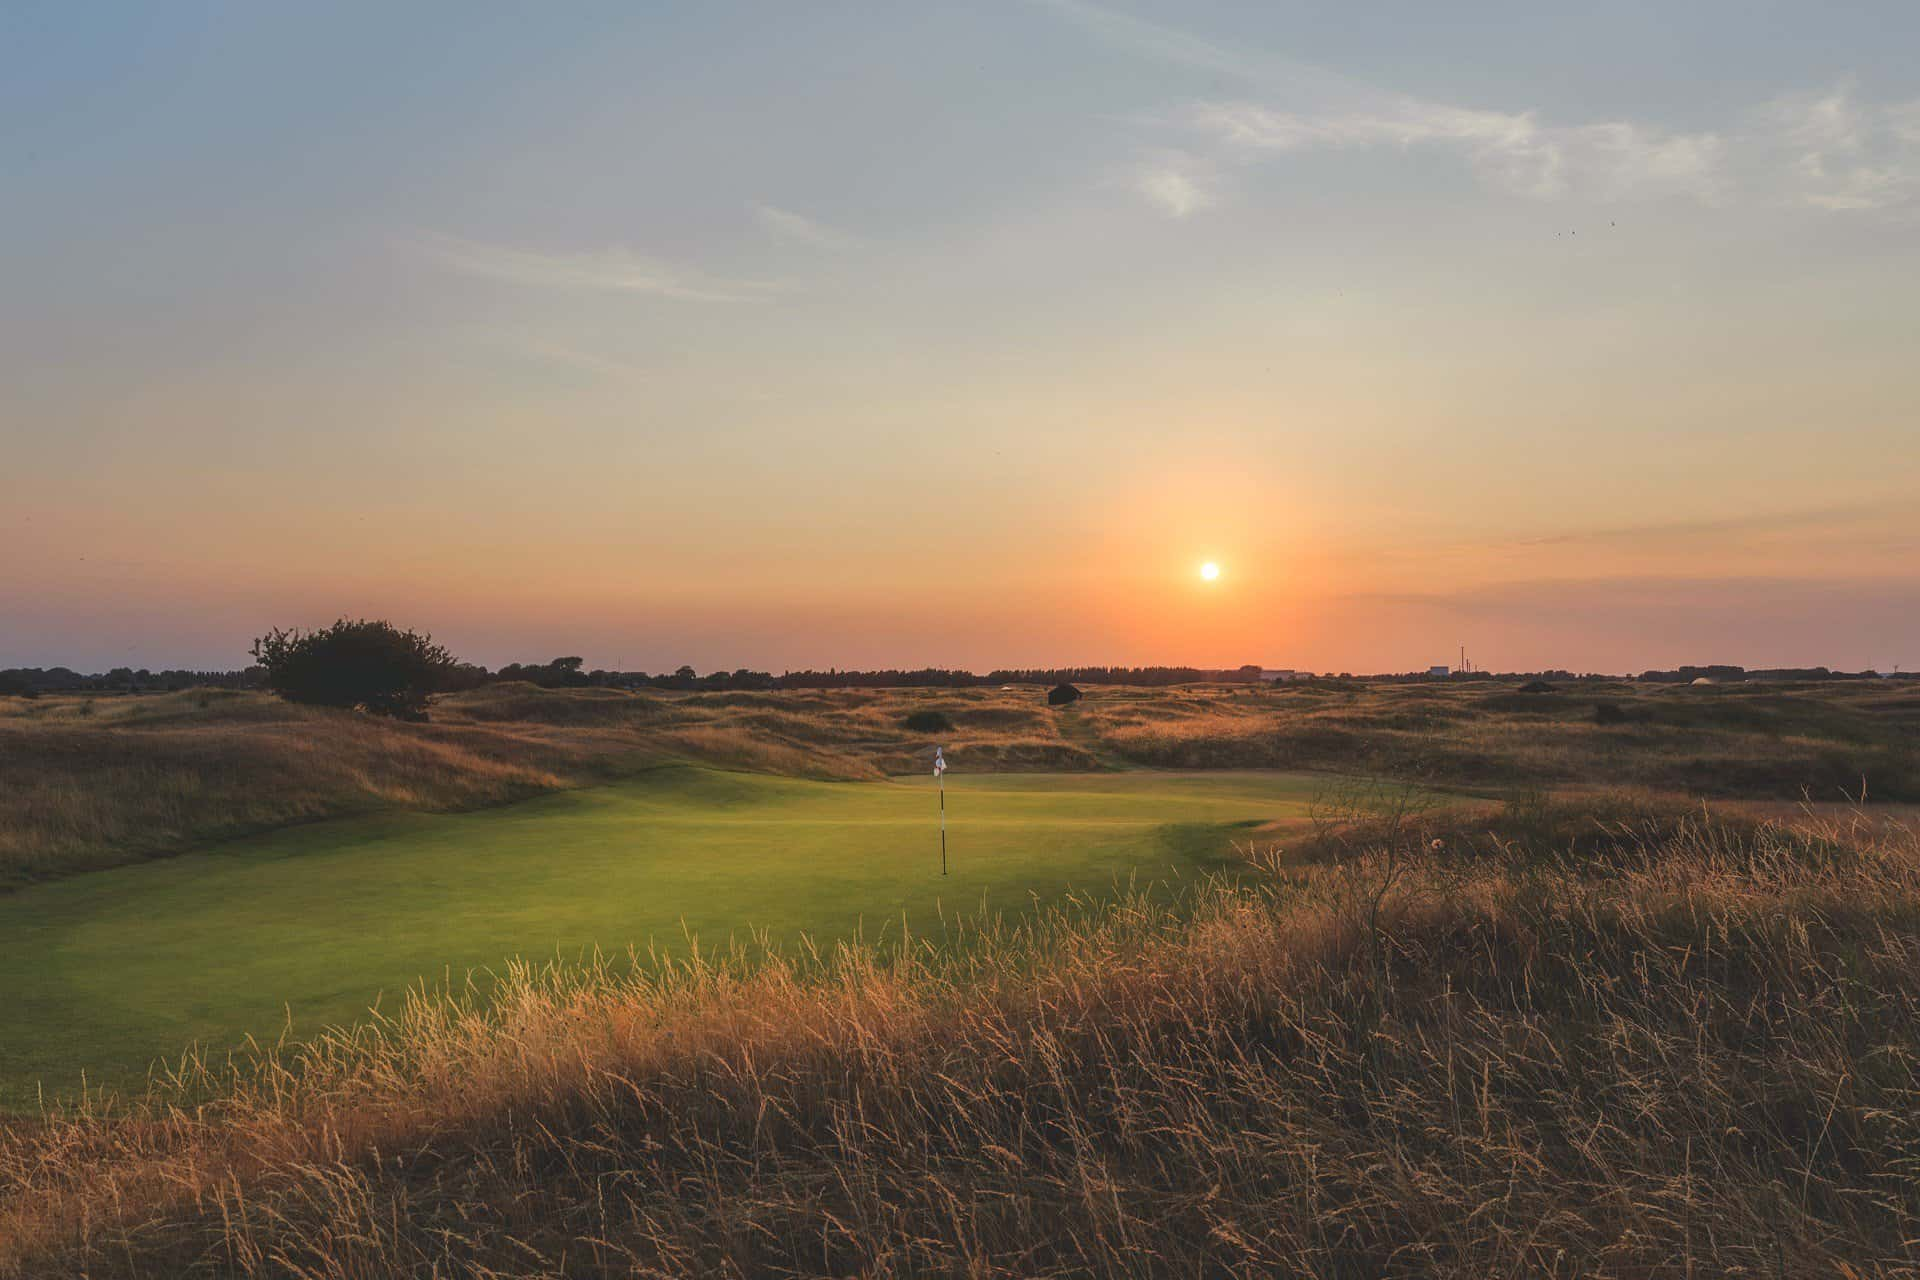 The 3rd hole at Royal St Georges Golf Club